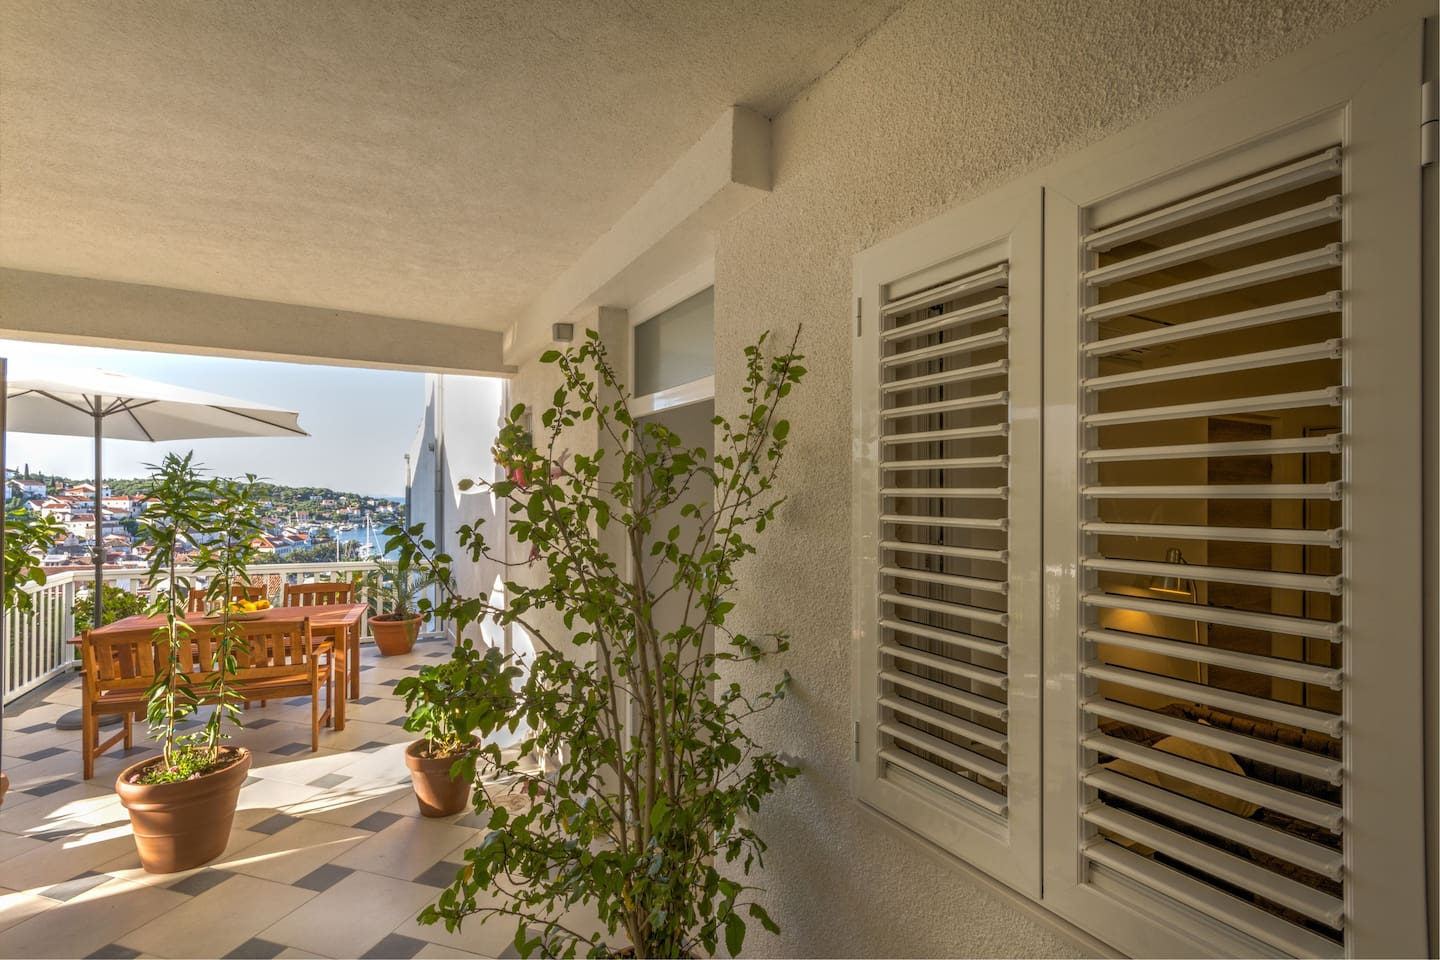 Double or twin room has external terrace just in the front of the room